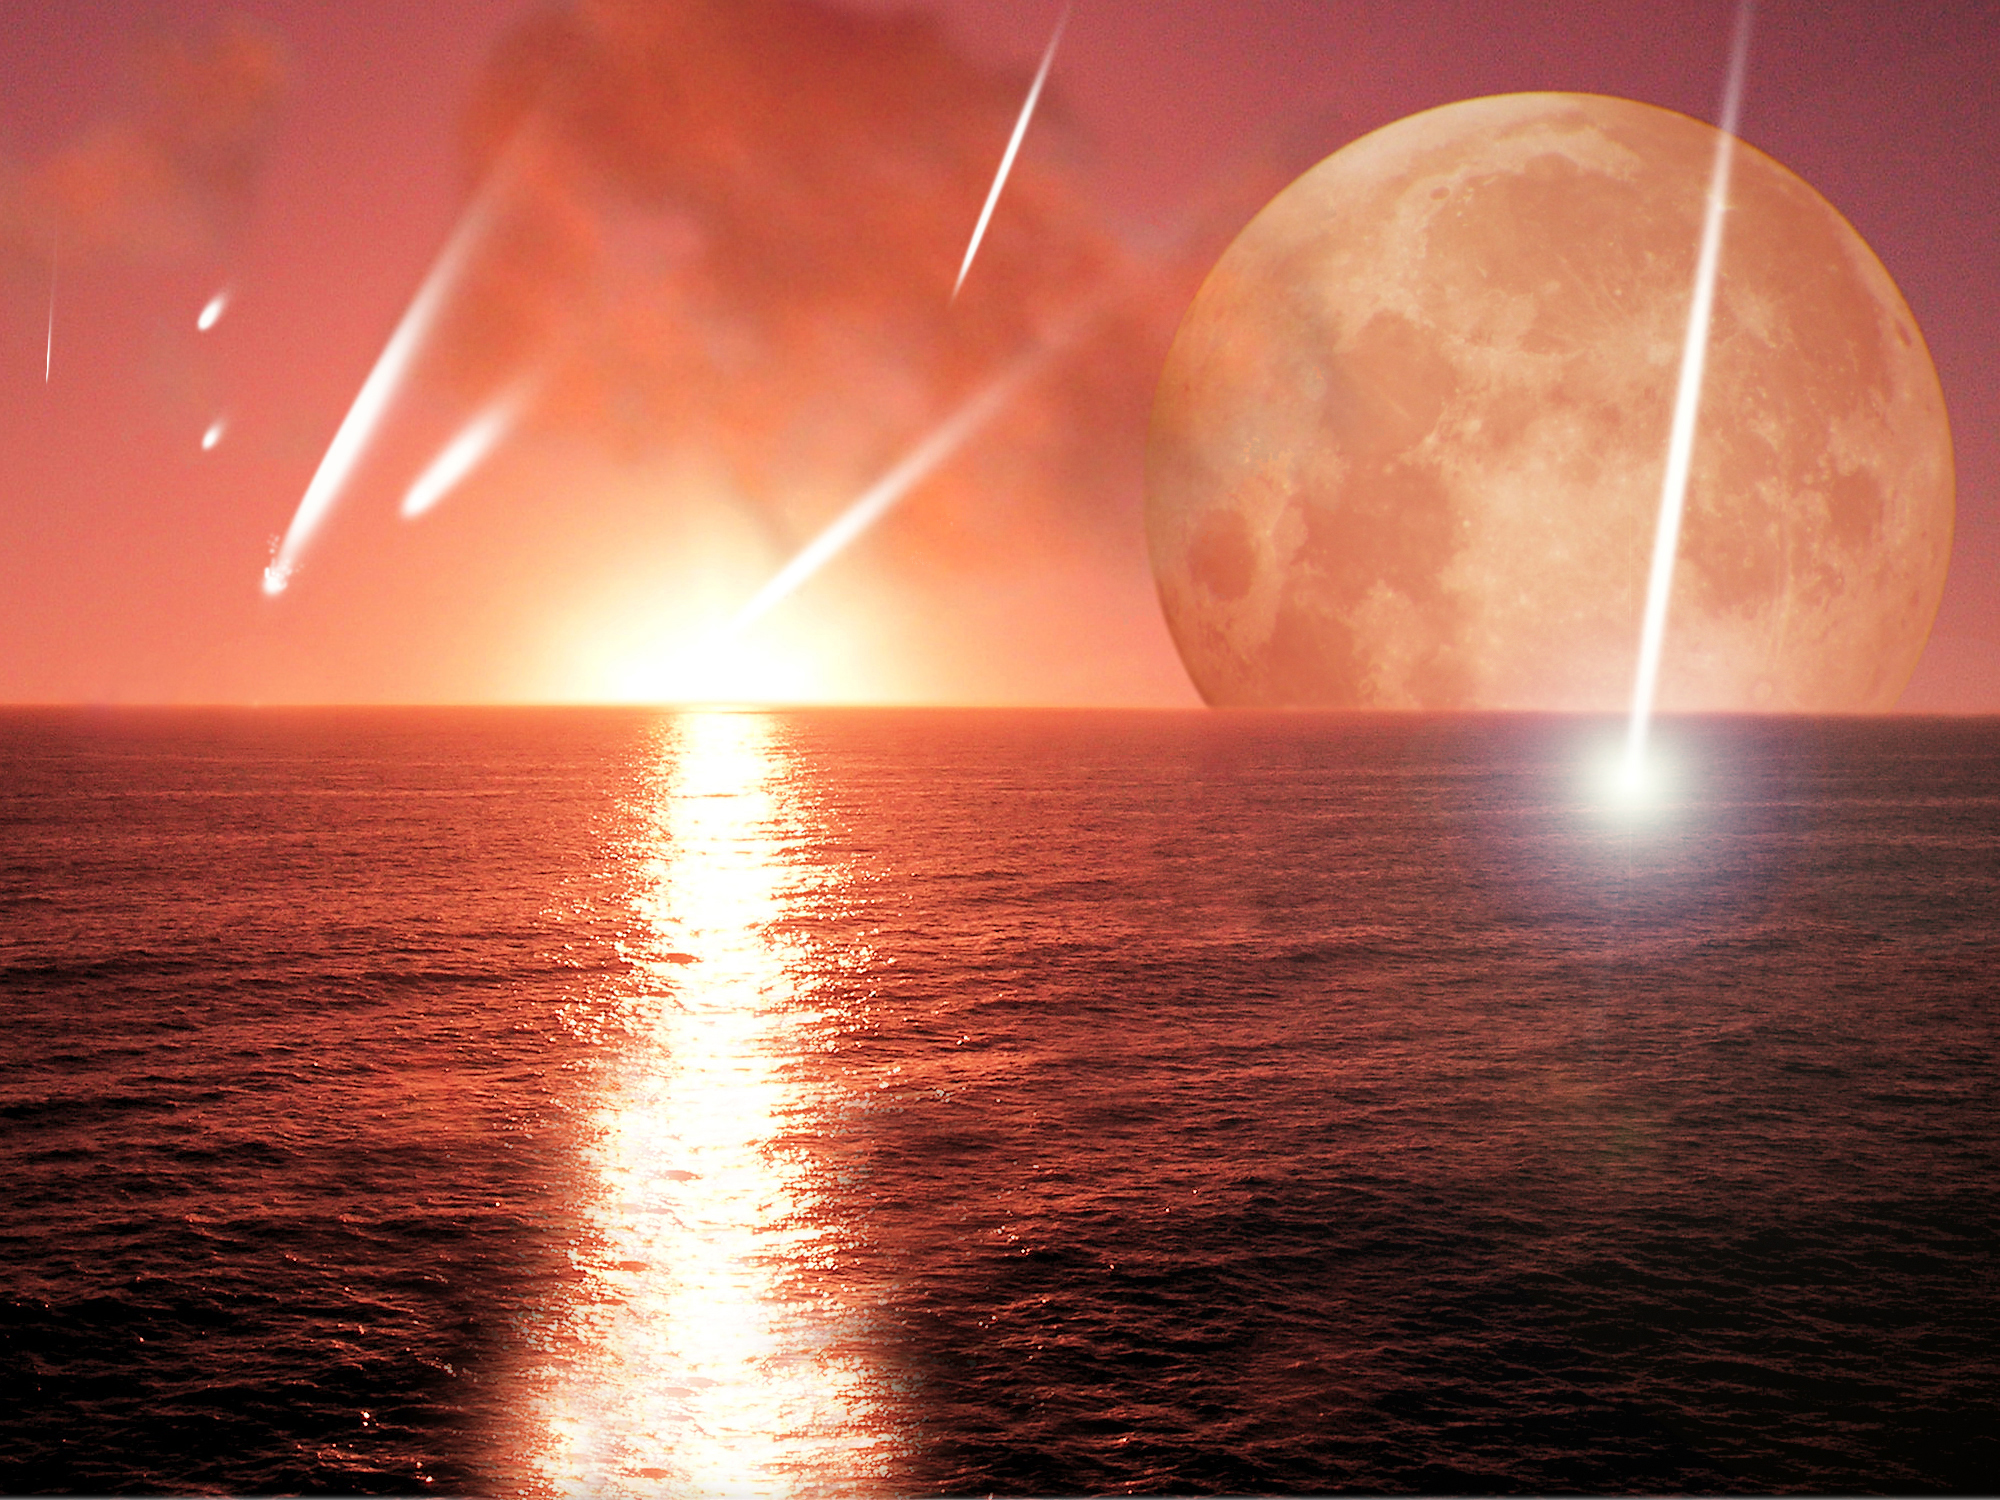 Meteors crashing into young Earth conception